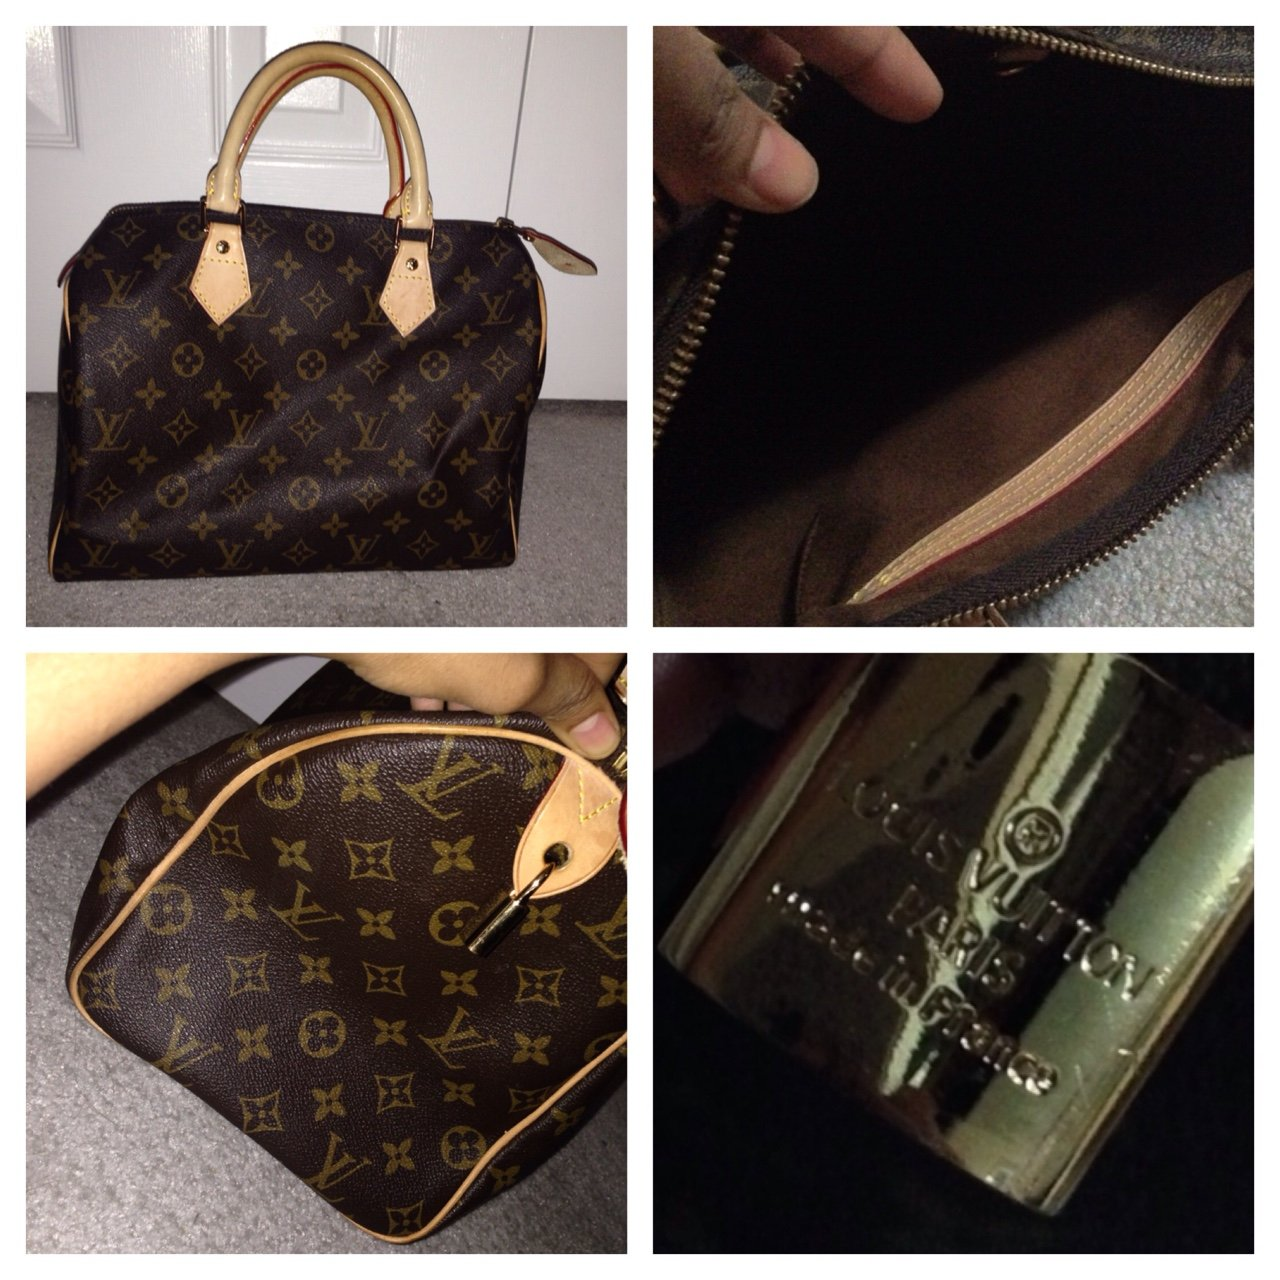 21e02c5fc389  therealb3e. 4 years ago. Canada. Never used . Louis Vuitton bag. Classic  LV logo. Mint condition (price ...